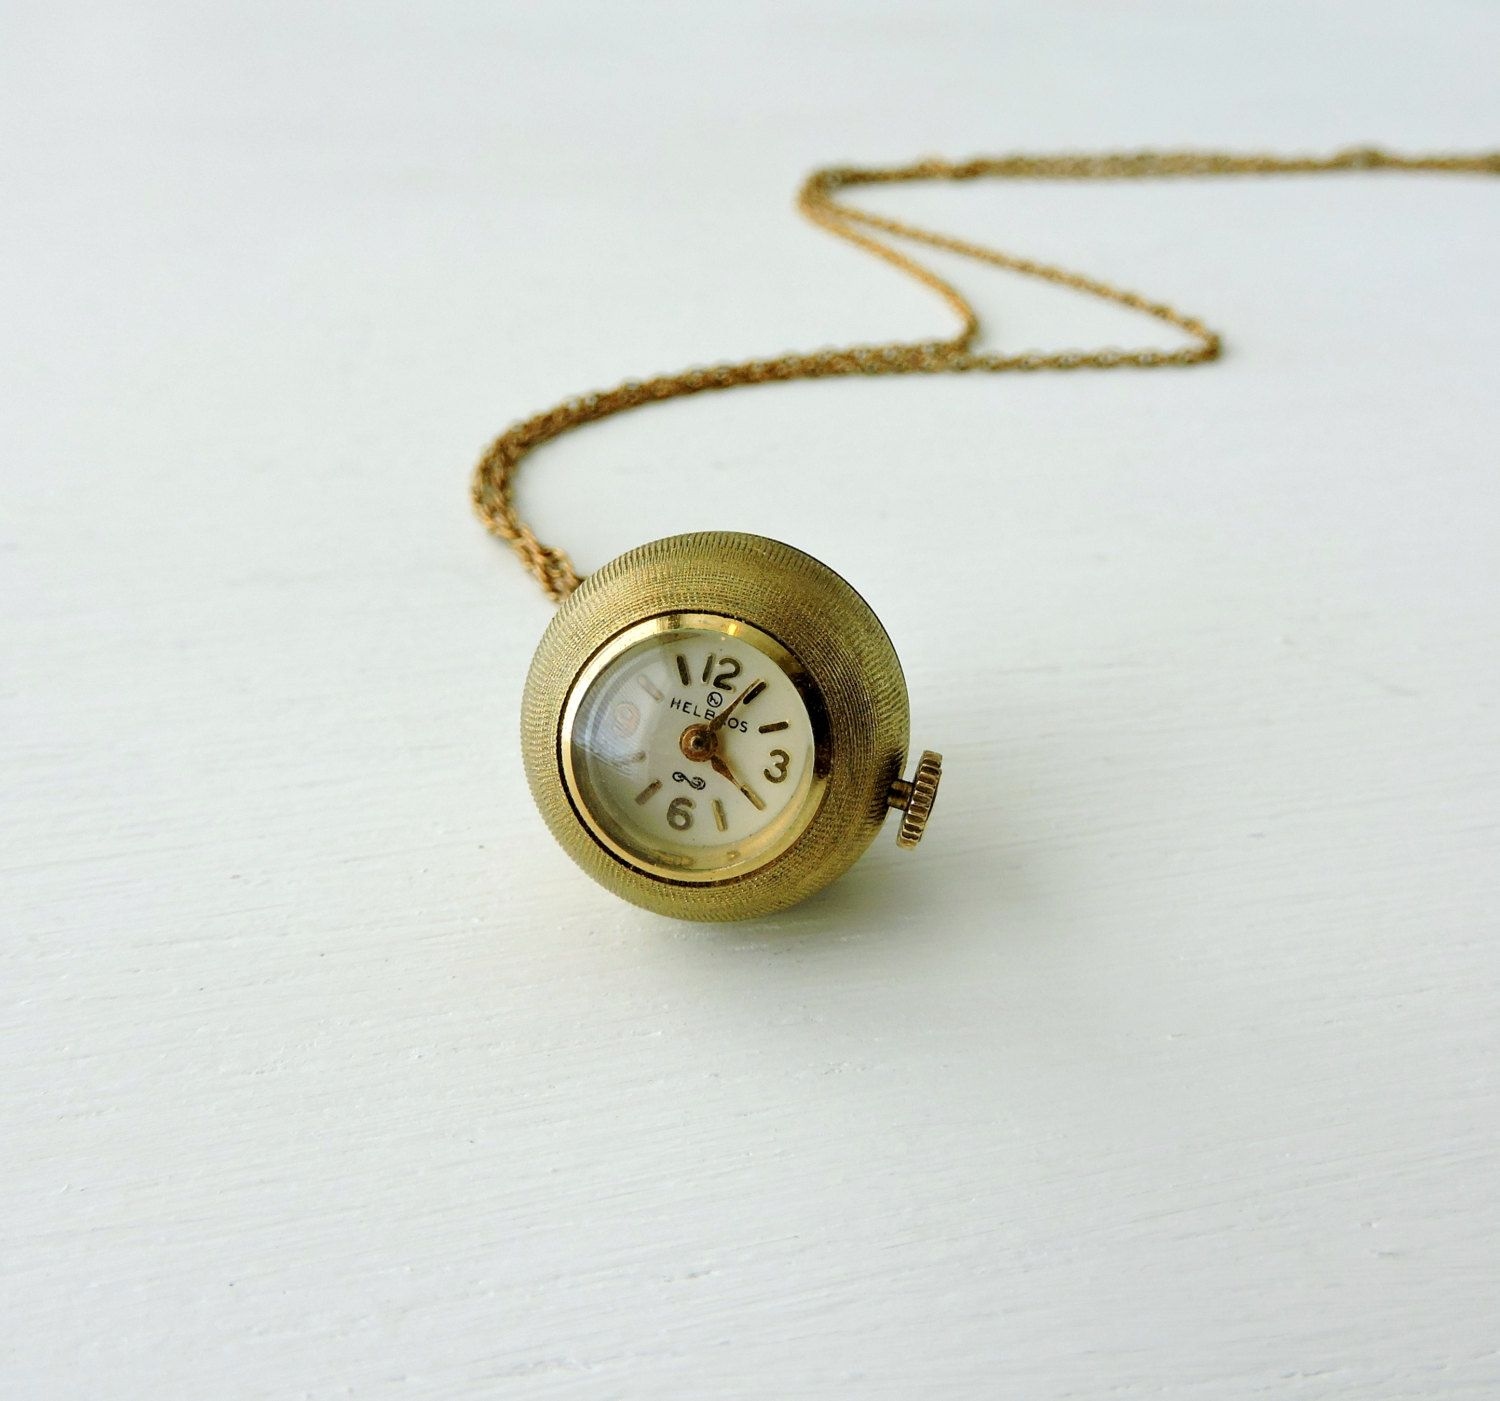 Vintage ball watch pendant necklace 12k gold filled working vintage ball watch pendant necklace 12k gold filled working helbros ladies watch wind aloadofball Gallery